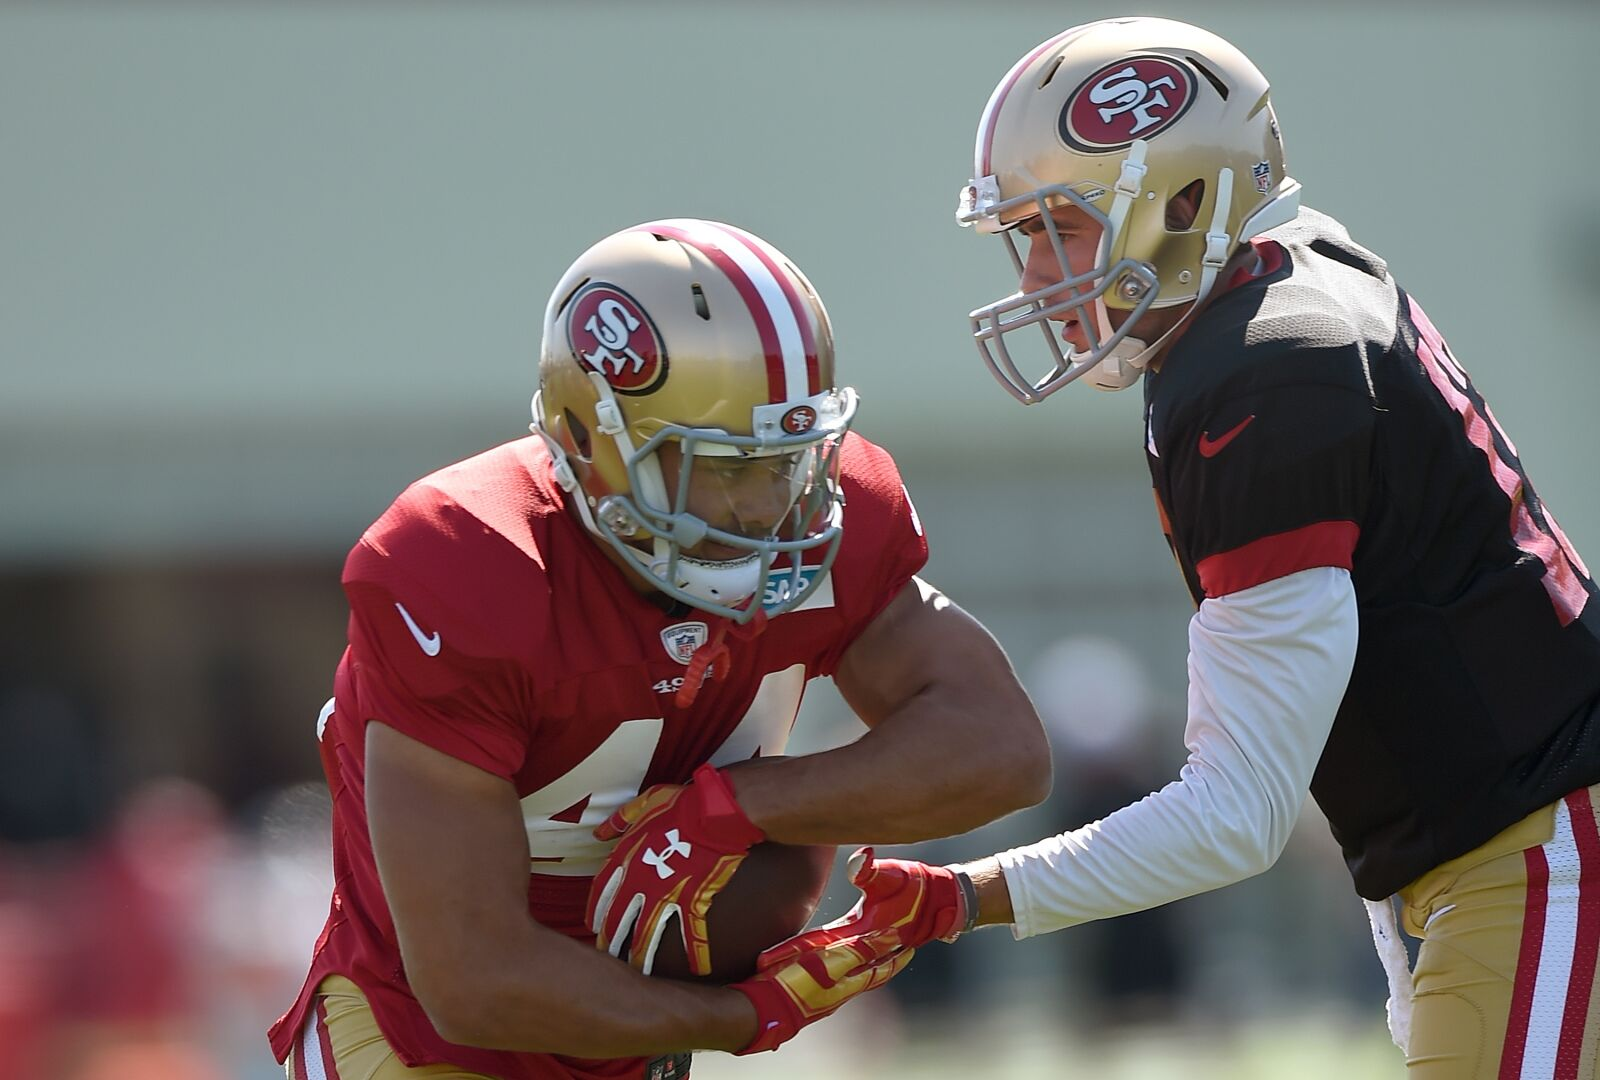 49ers biggest winners and losers from otas so far